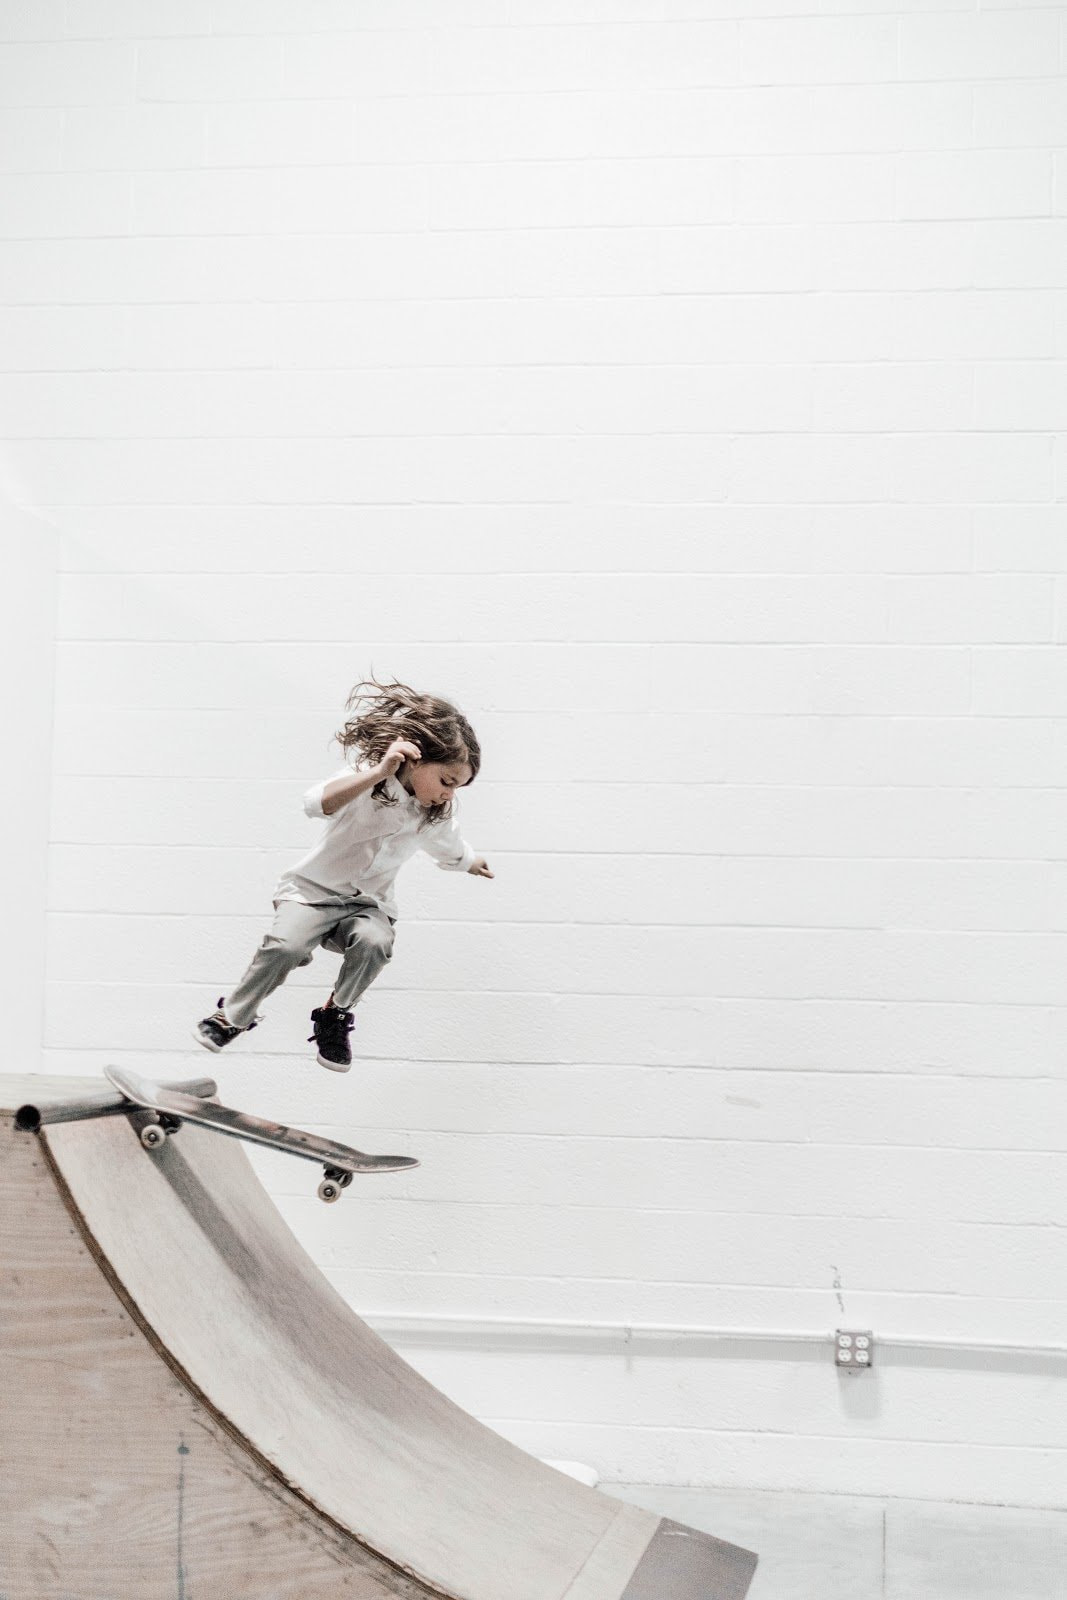 Action shot of a young skateboarder by Emily Reider